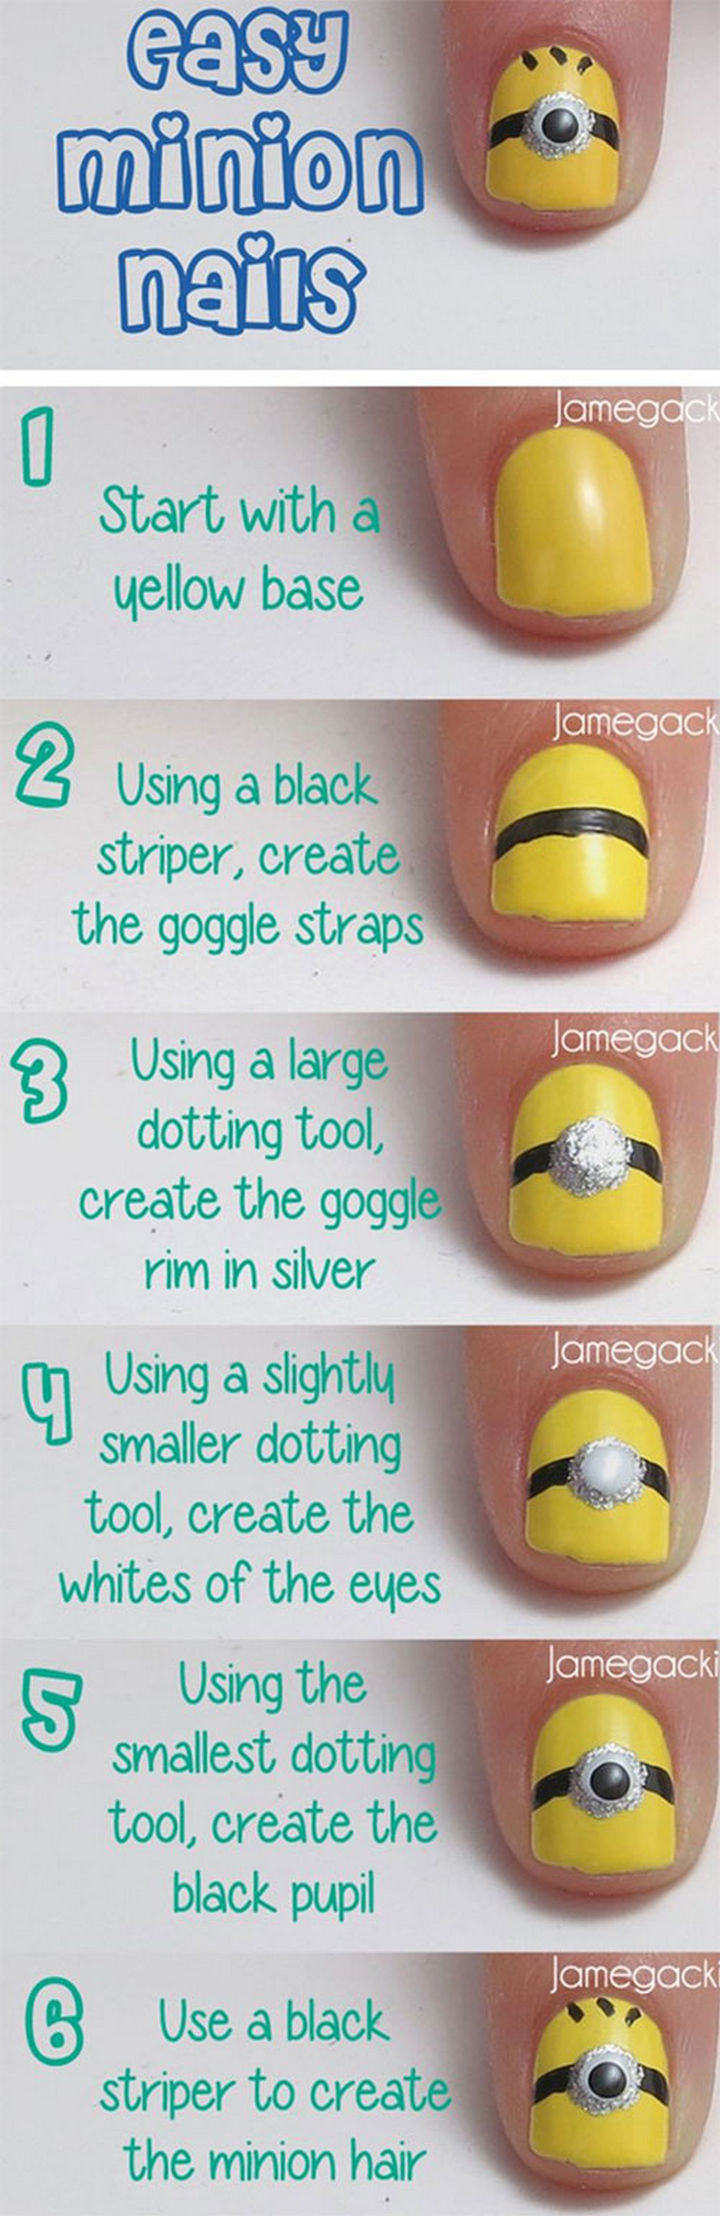 19 Minion Nails - Easy DIY Minion nails!